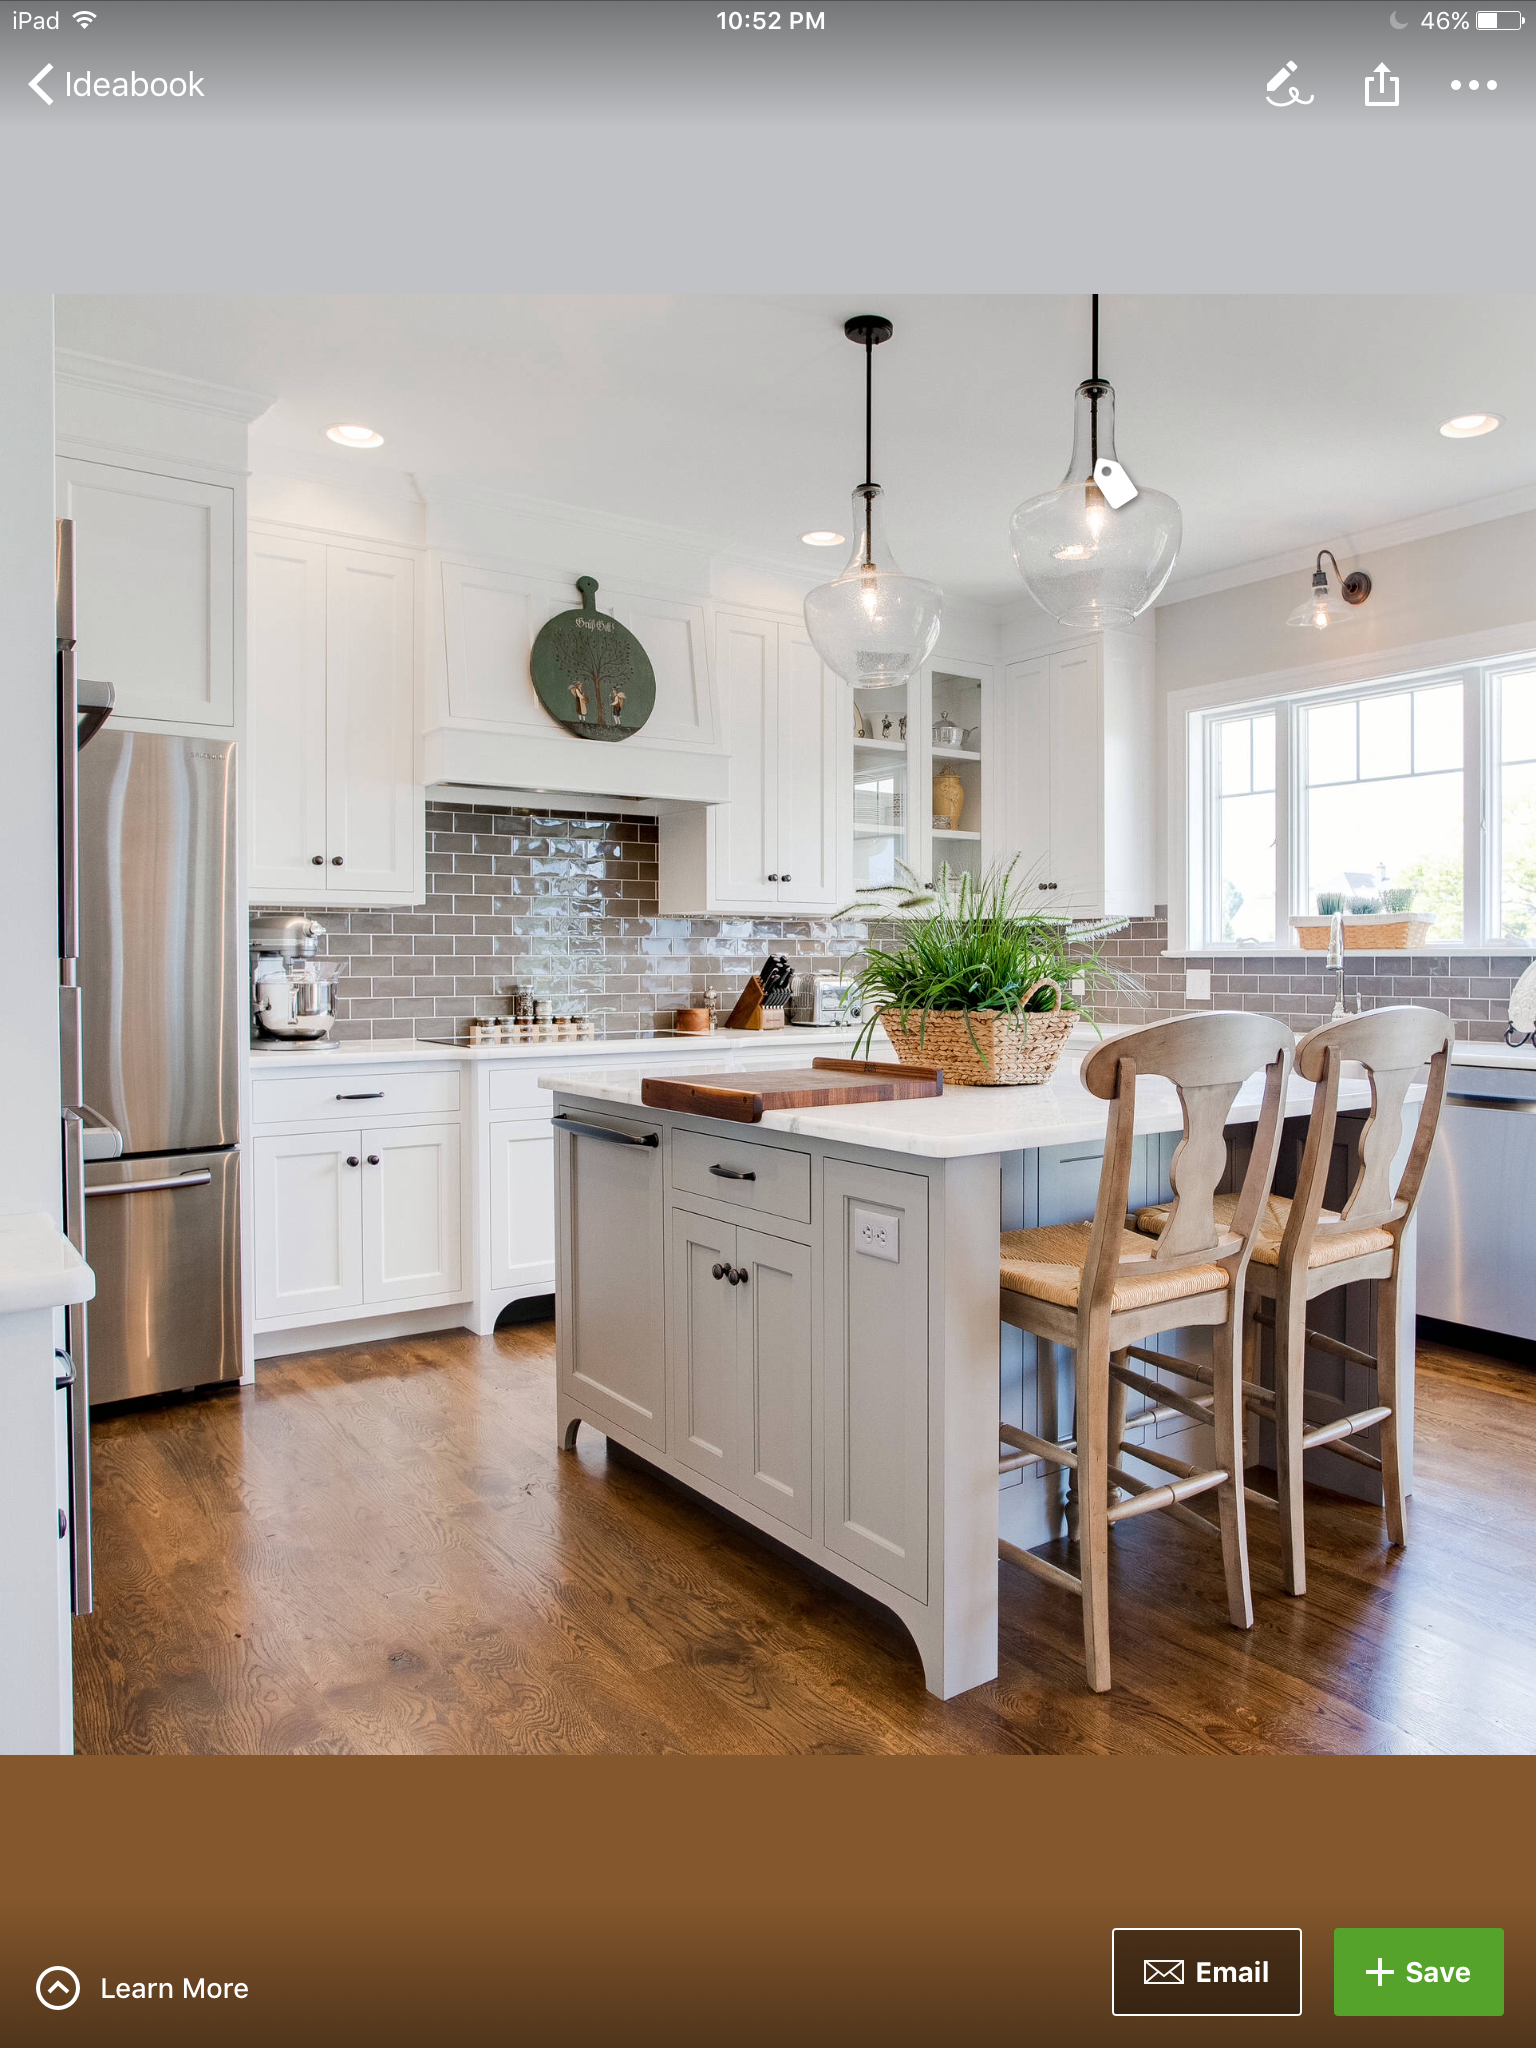 Agreeable Gray Kitchen Agreeable Gray In 2020 Living Room Grey White Kitchen Cabinets Agreeable Gray